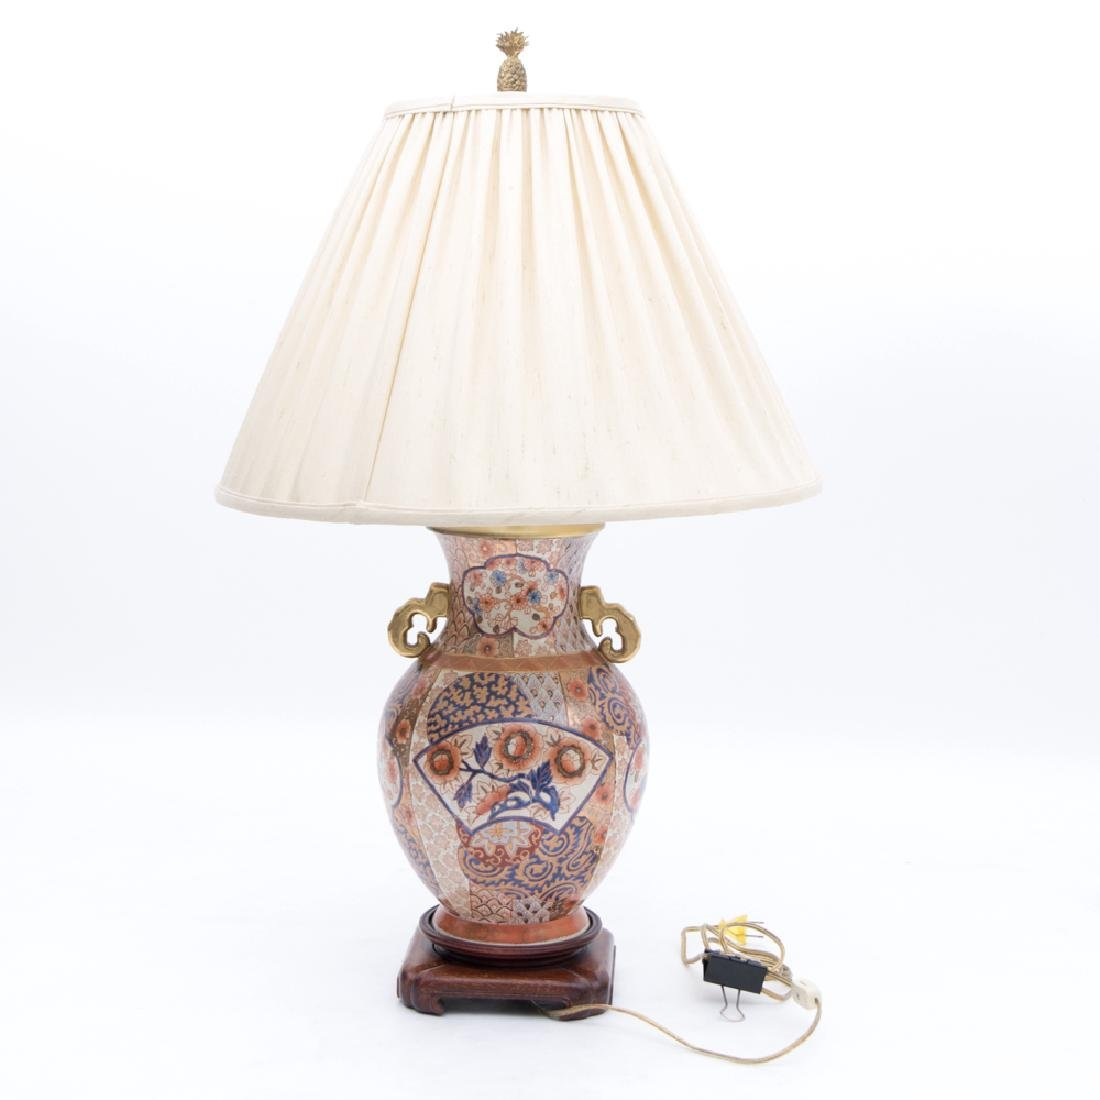 A Japanese Imari Porcelain Table Lamp, 20th Century.